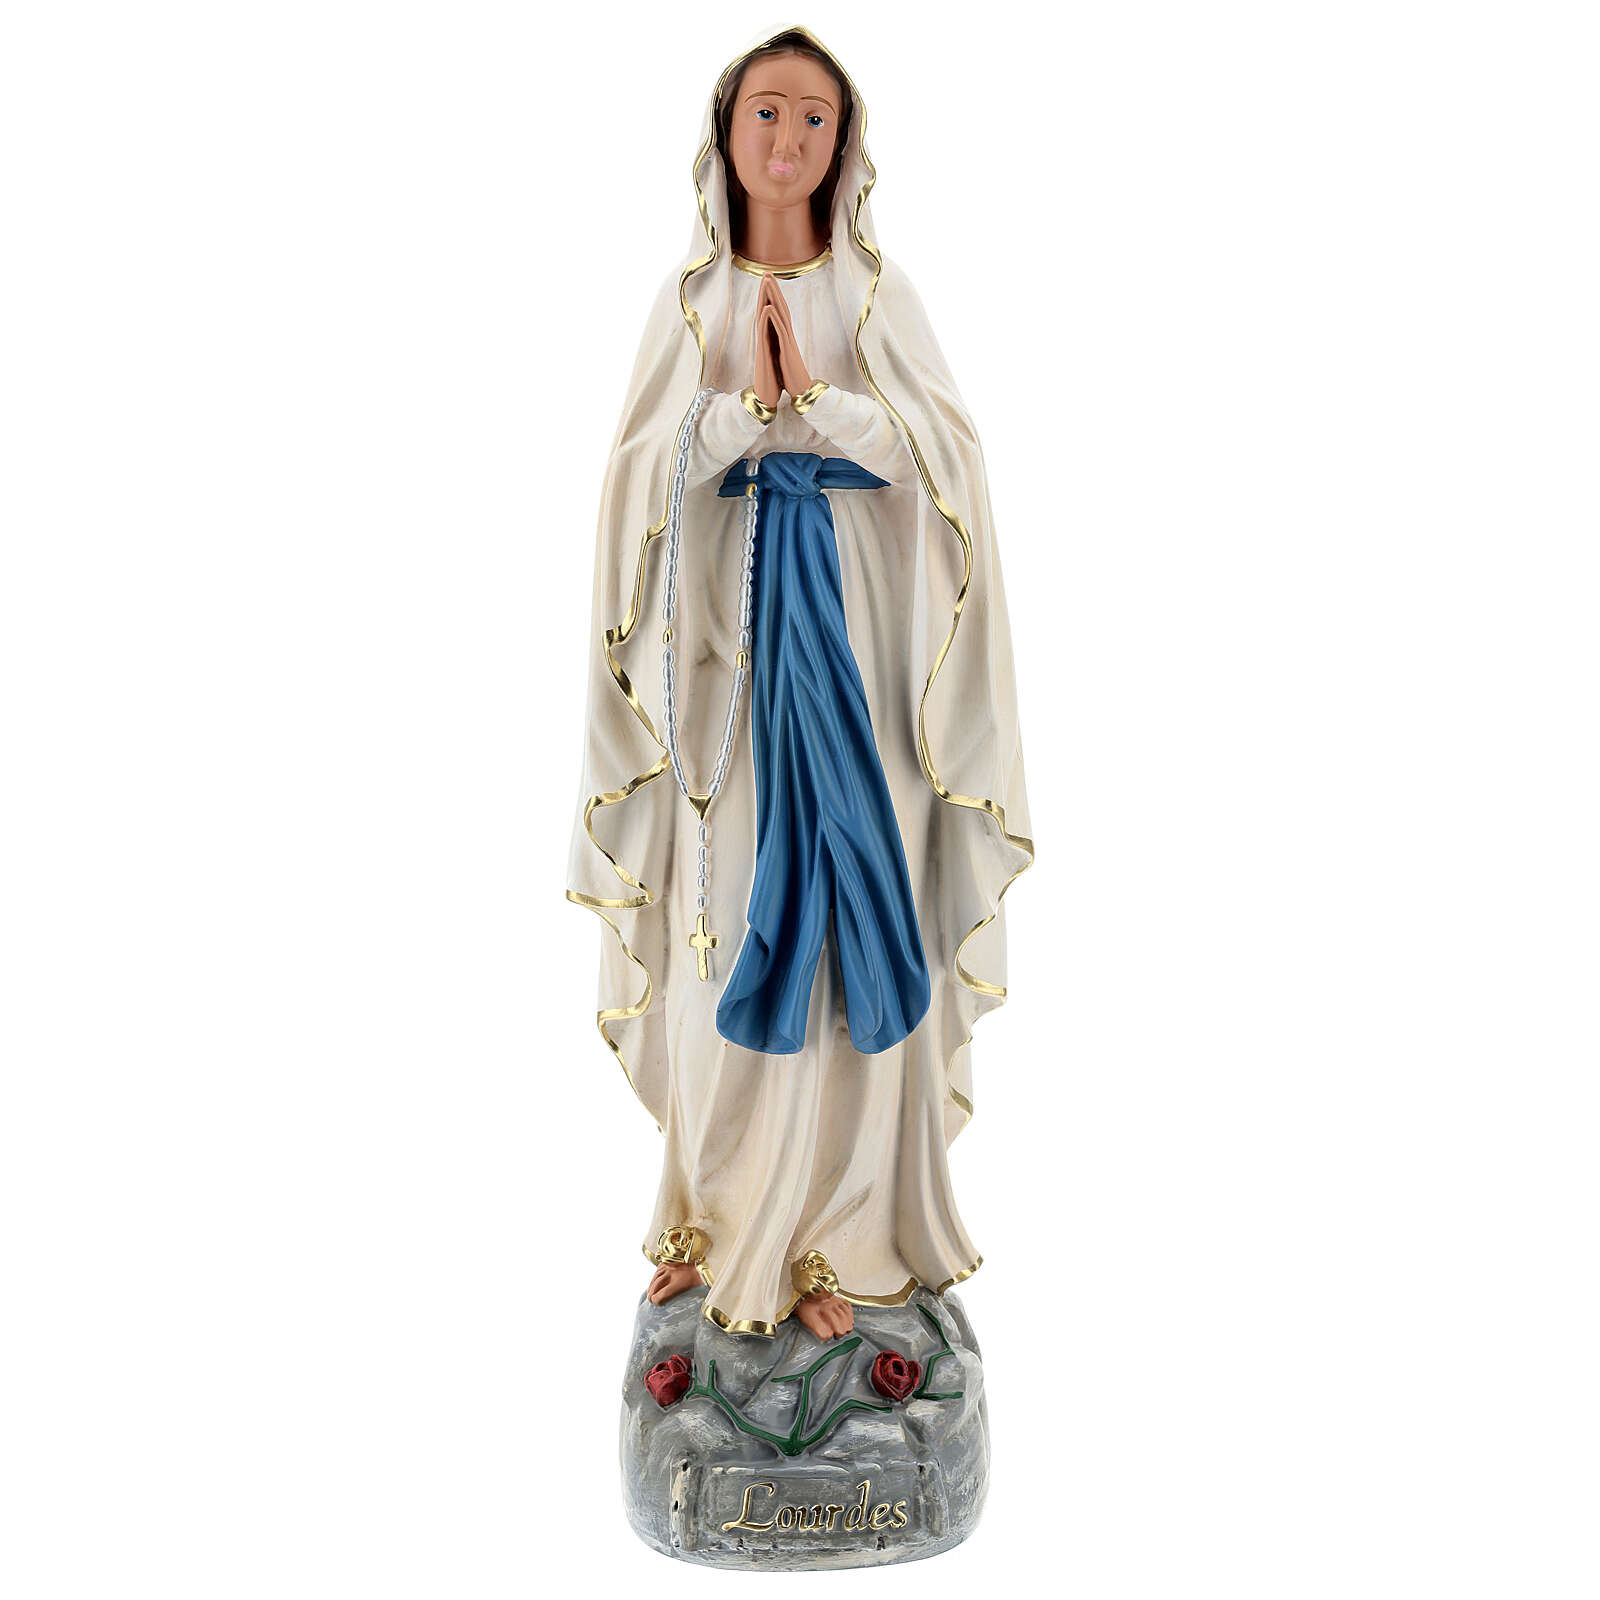 Statue of Our Lady of Lourdes resin 60 cm hand painted Arte Barsanti 4